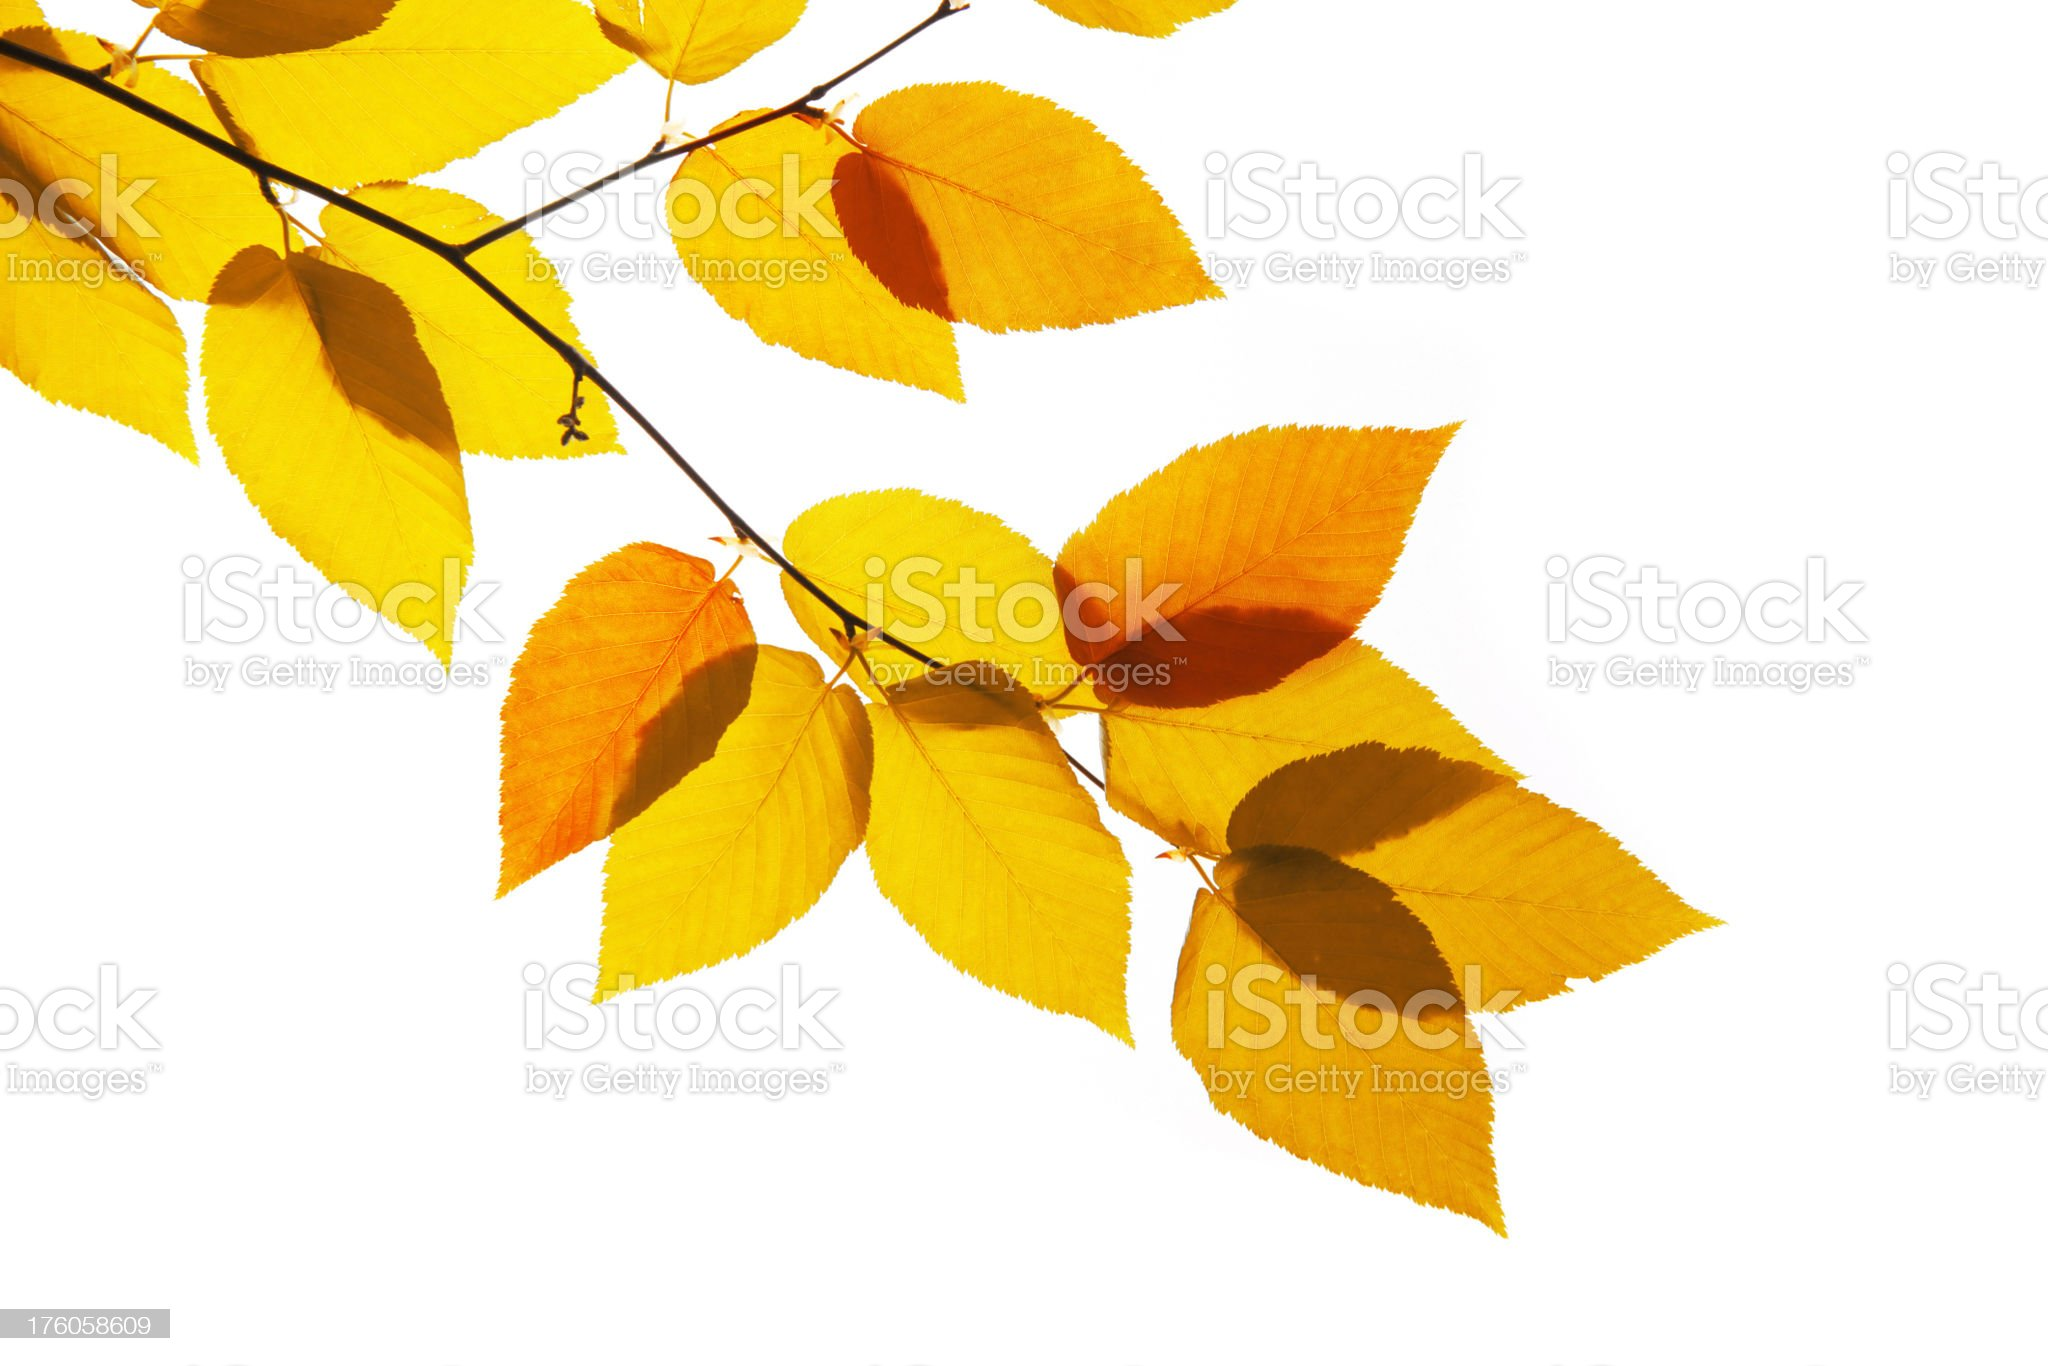 Yellow and orange leaves royalty-free stock photo